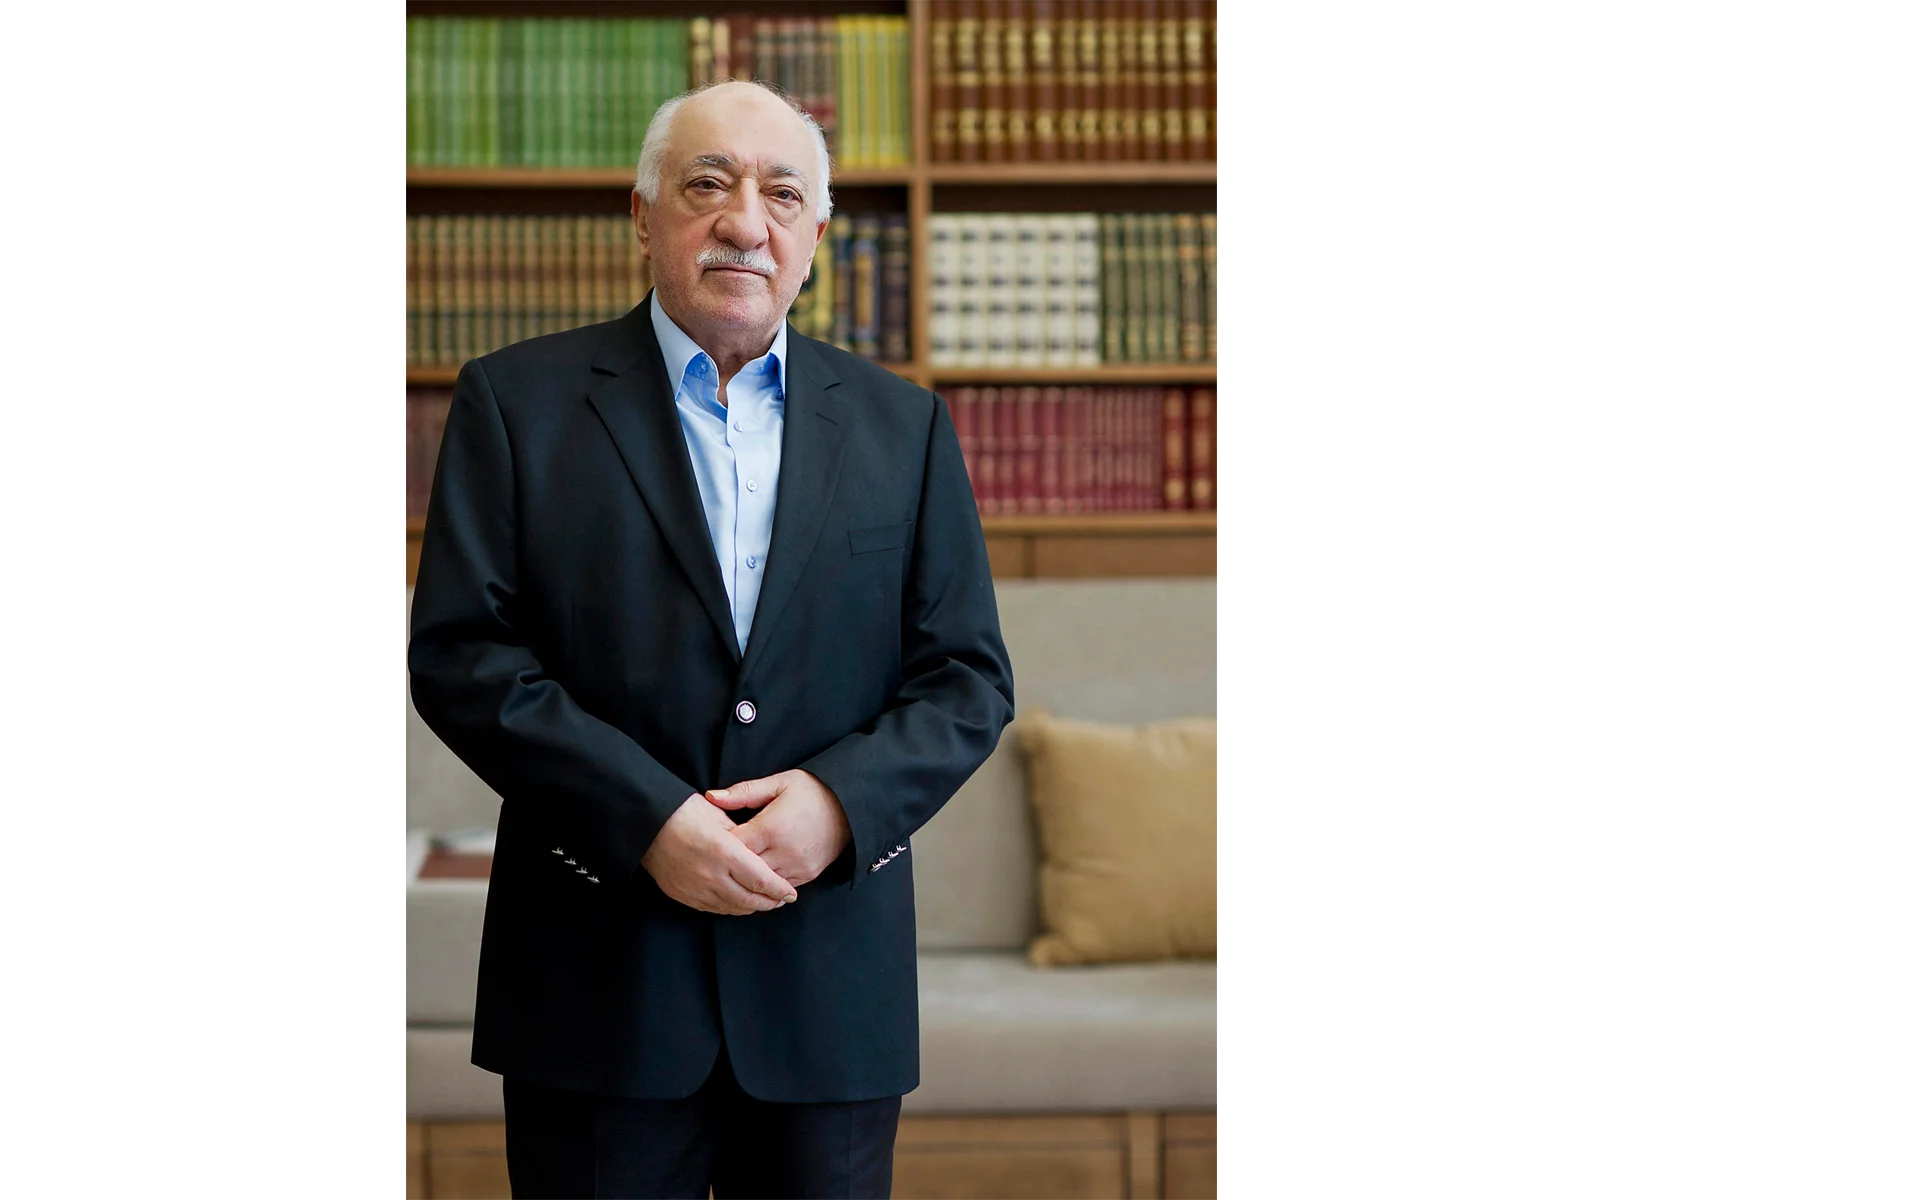 Under the Shade of Tranquility: My Meeting with Fethullah Gülen